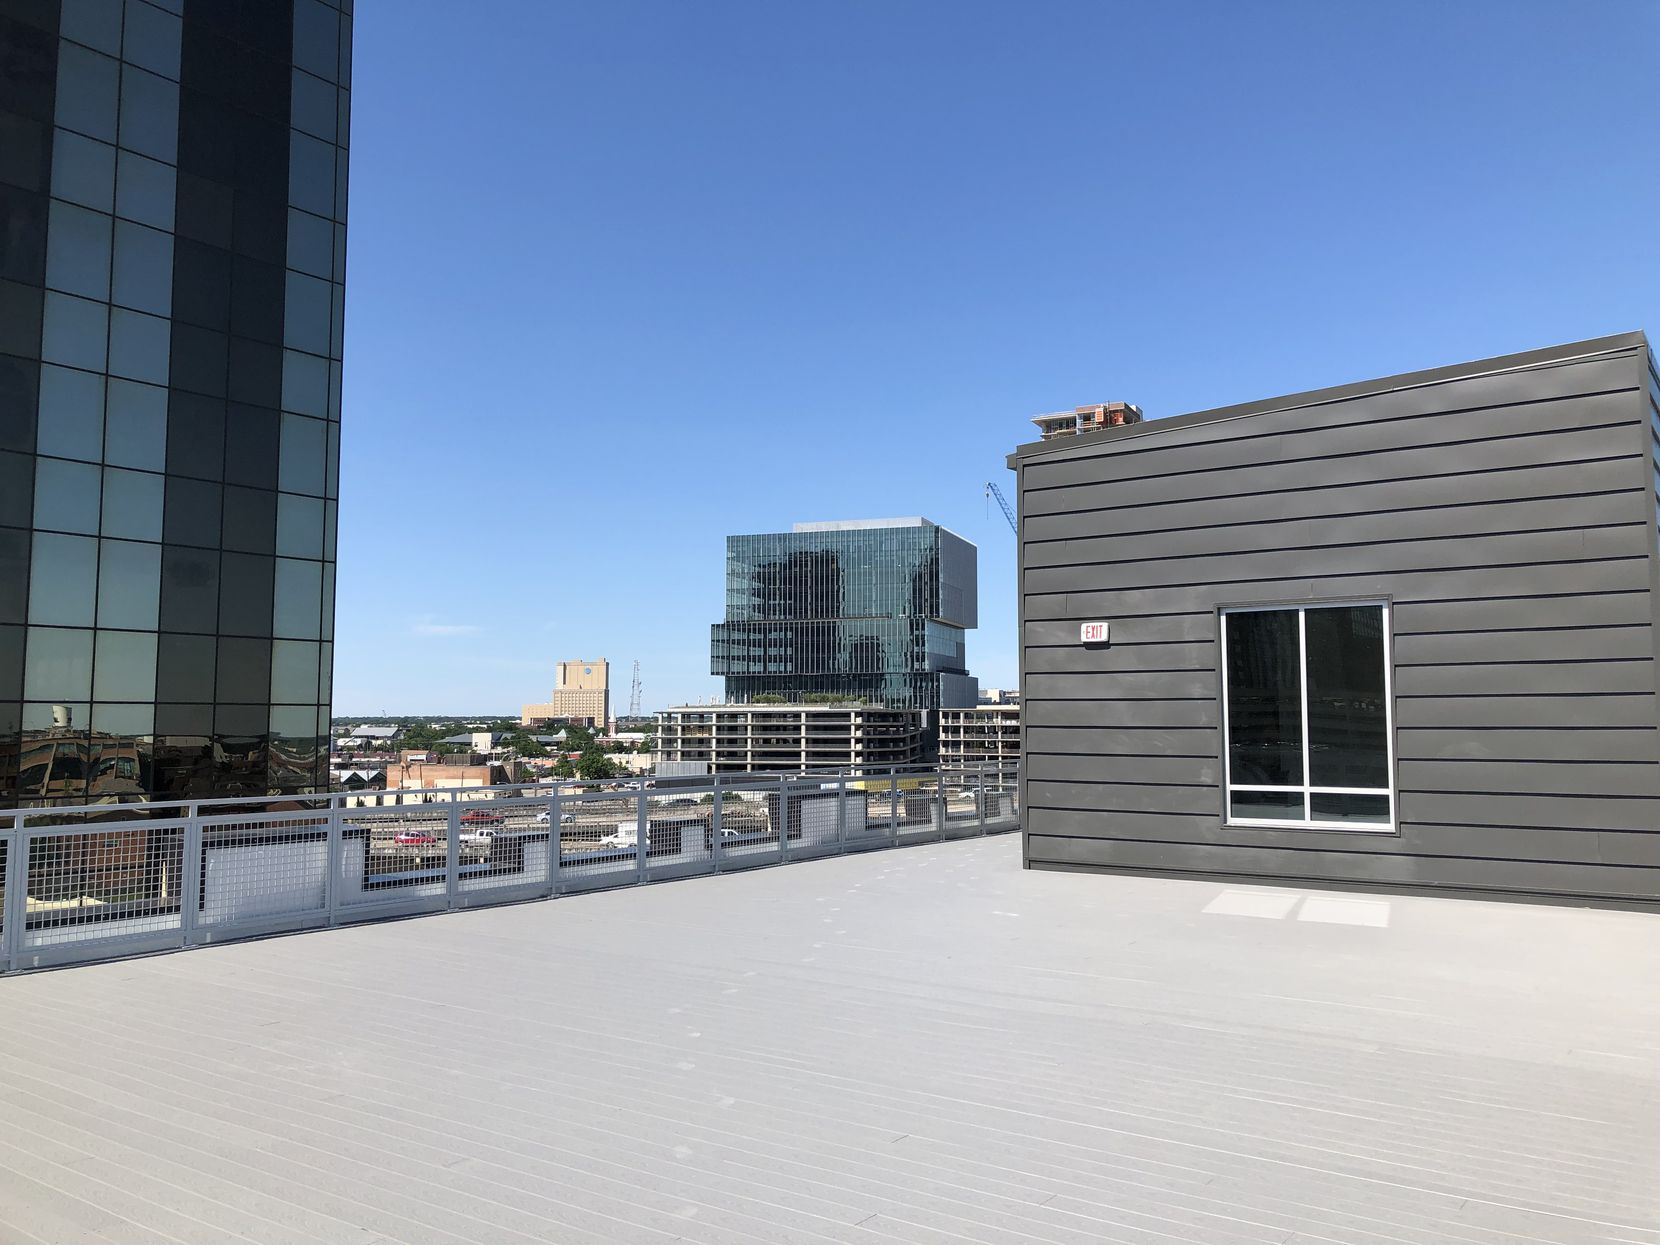 The roof deck of the 2200 Main building has views of nearby Deep Ellum, downtown and the surrounding East Quarter.